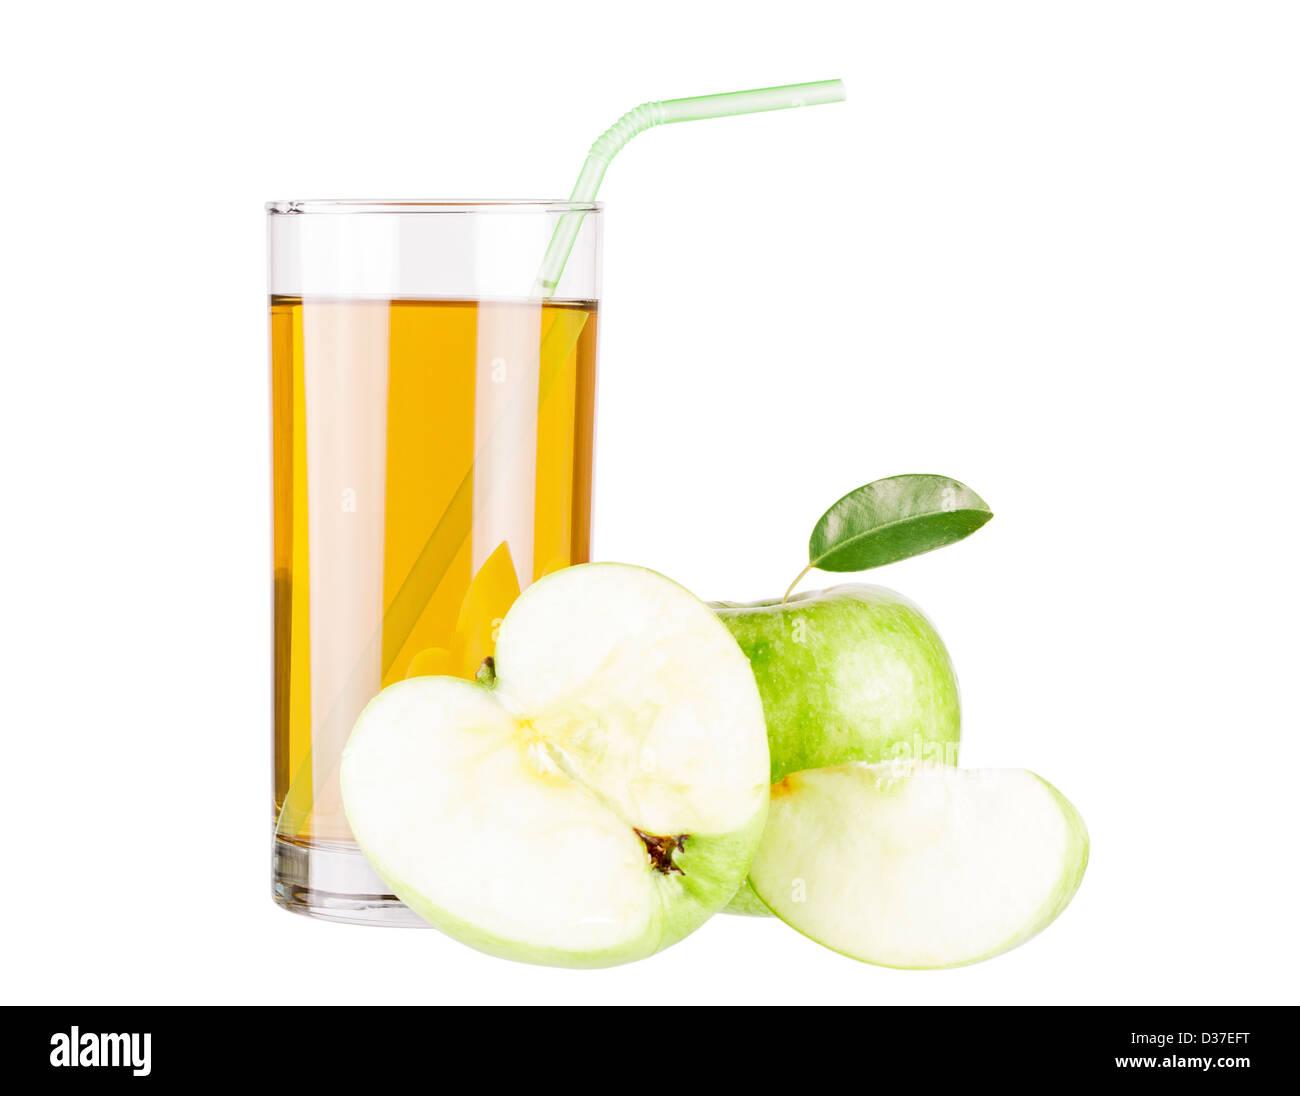 Apple juice and green apple isolated on white - Stock Image